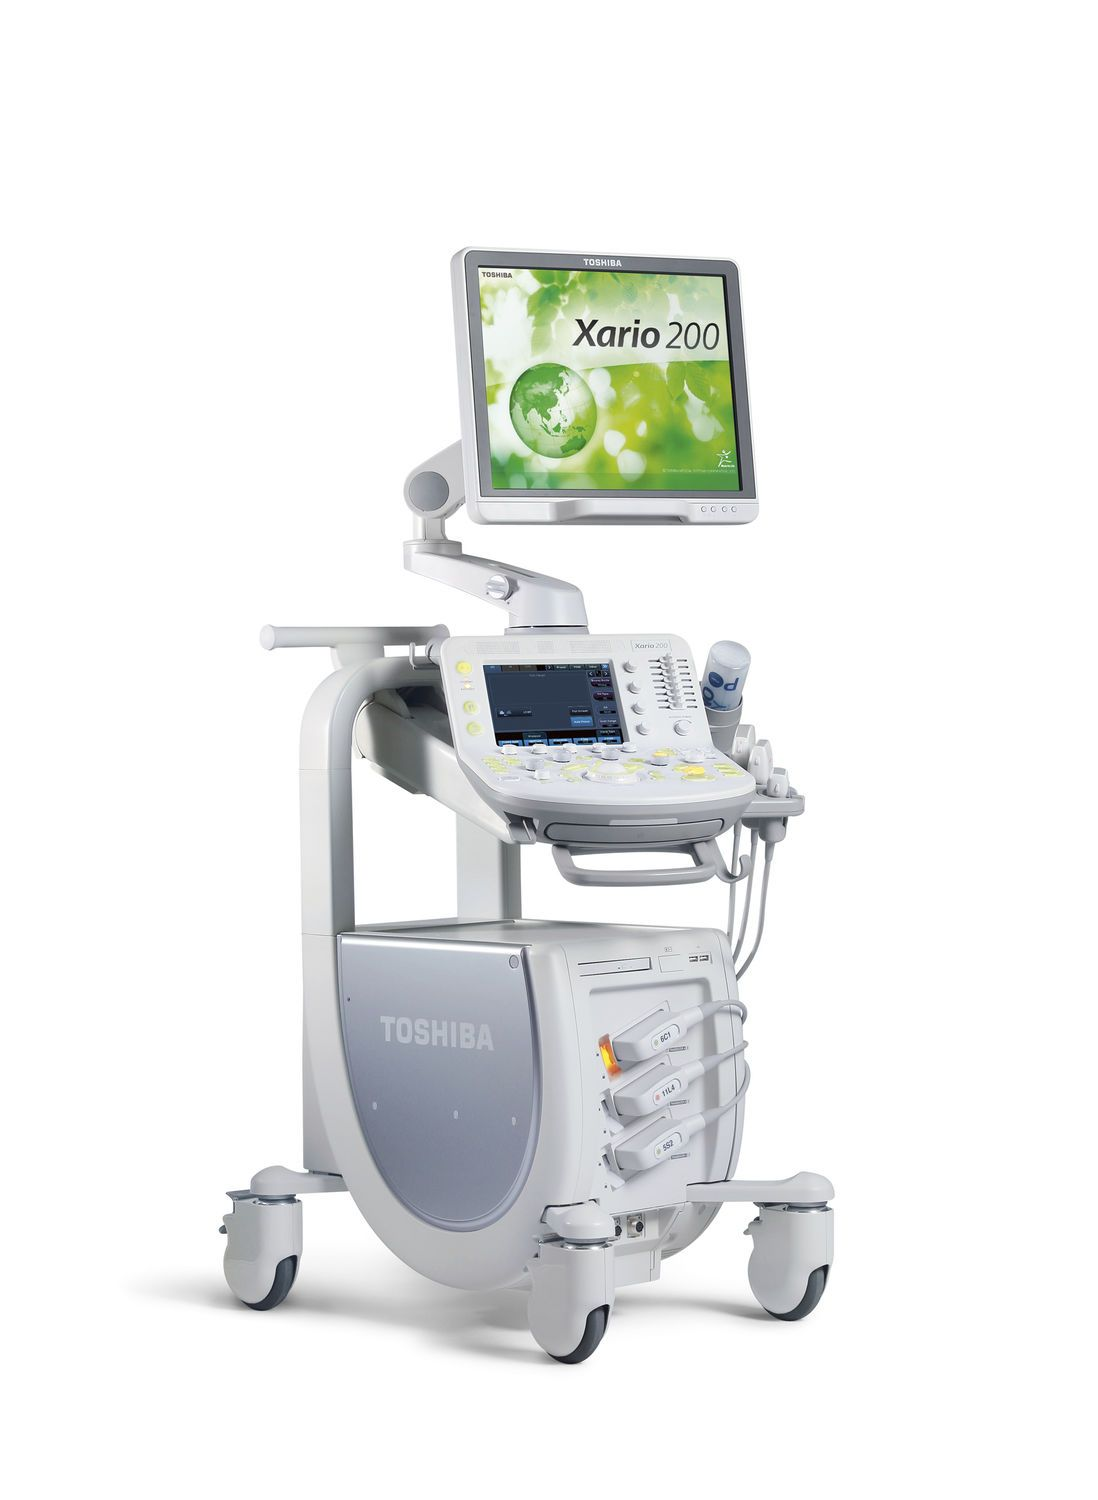 Medical Device Suppliers Near Me